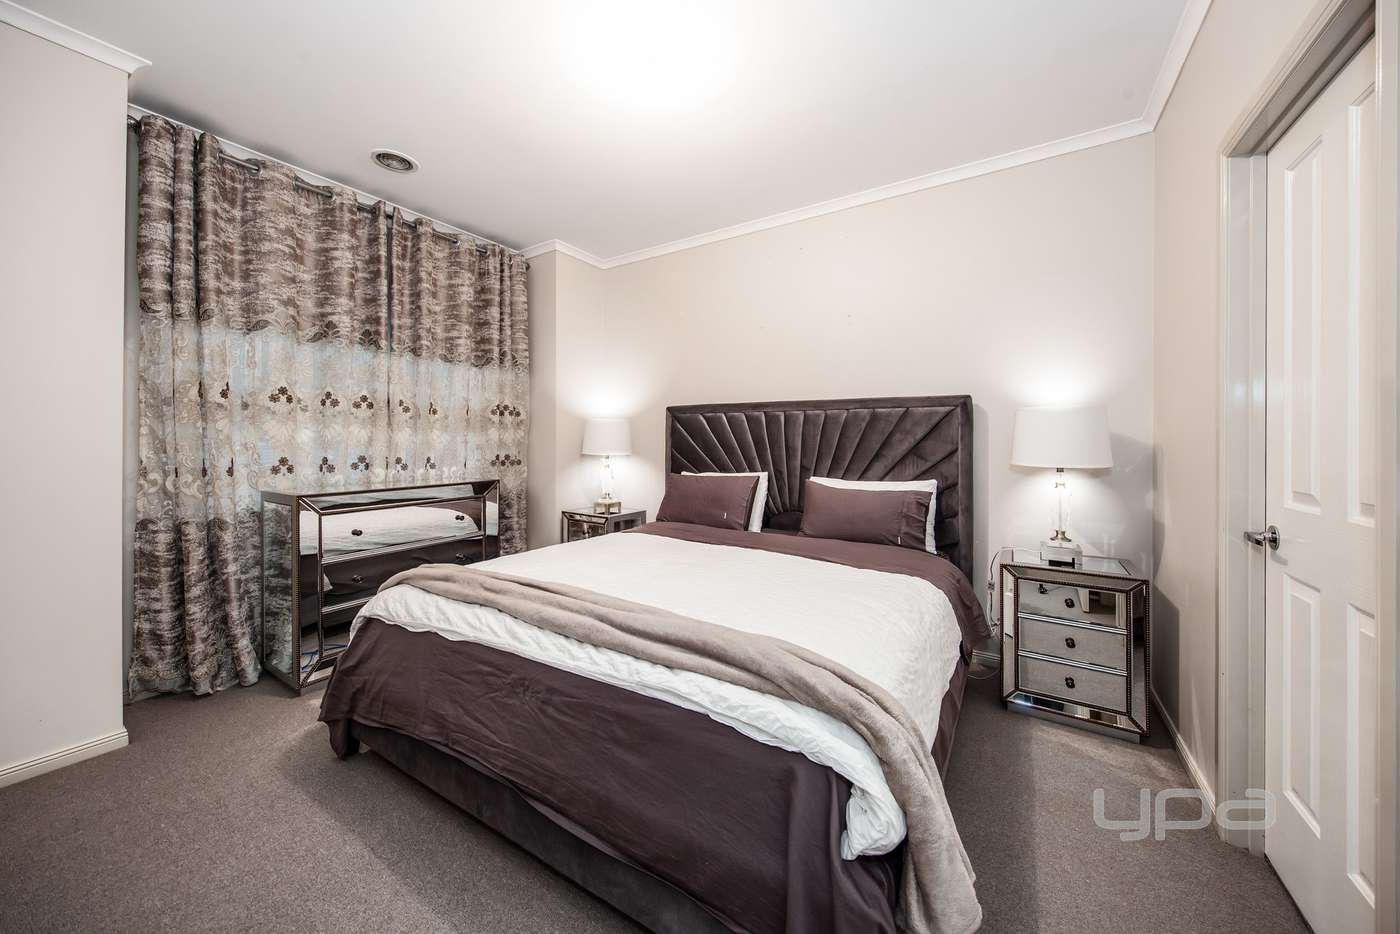 Fifth view of Homely house listing, 6 Hounslow Green, Caroline Springs VIC 3023